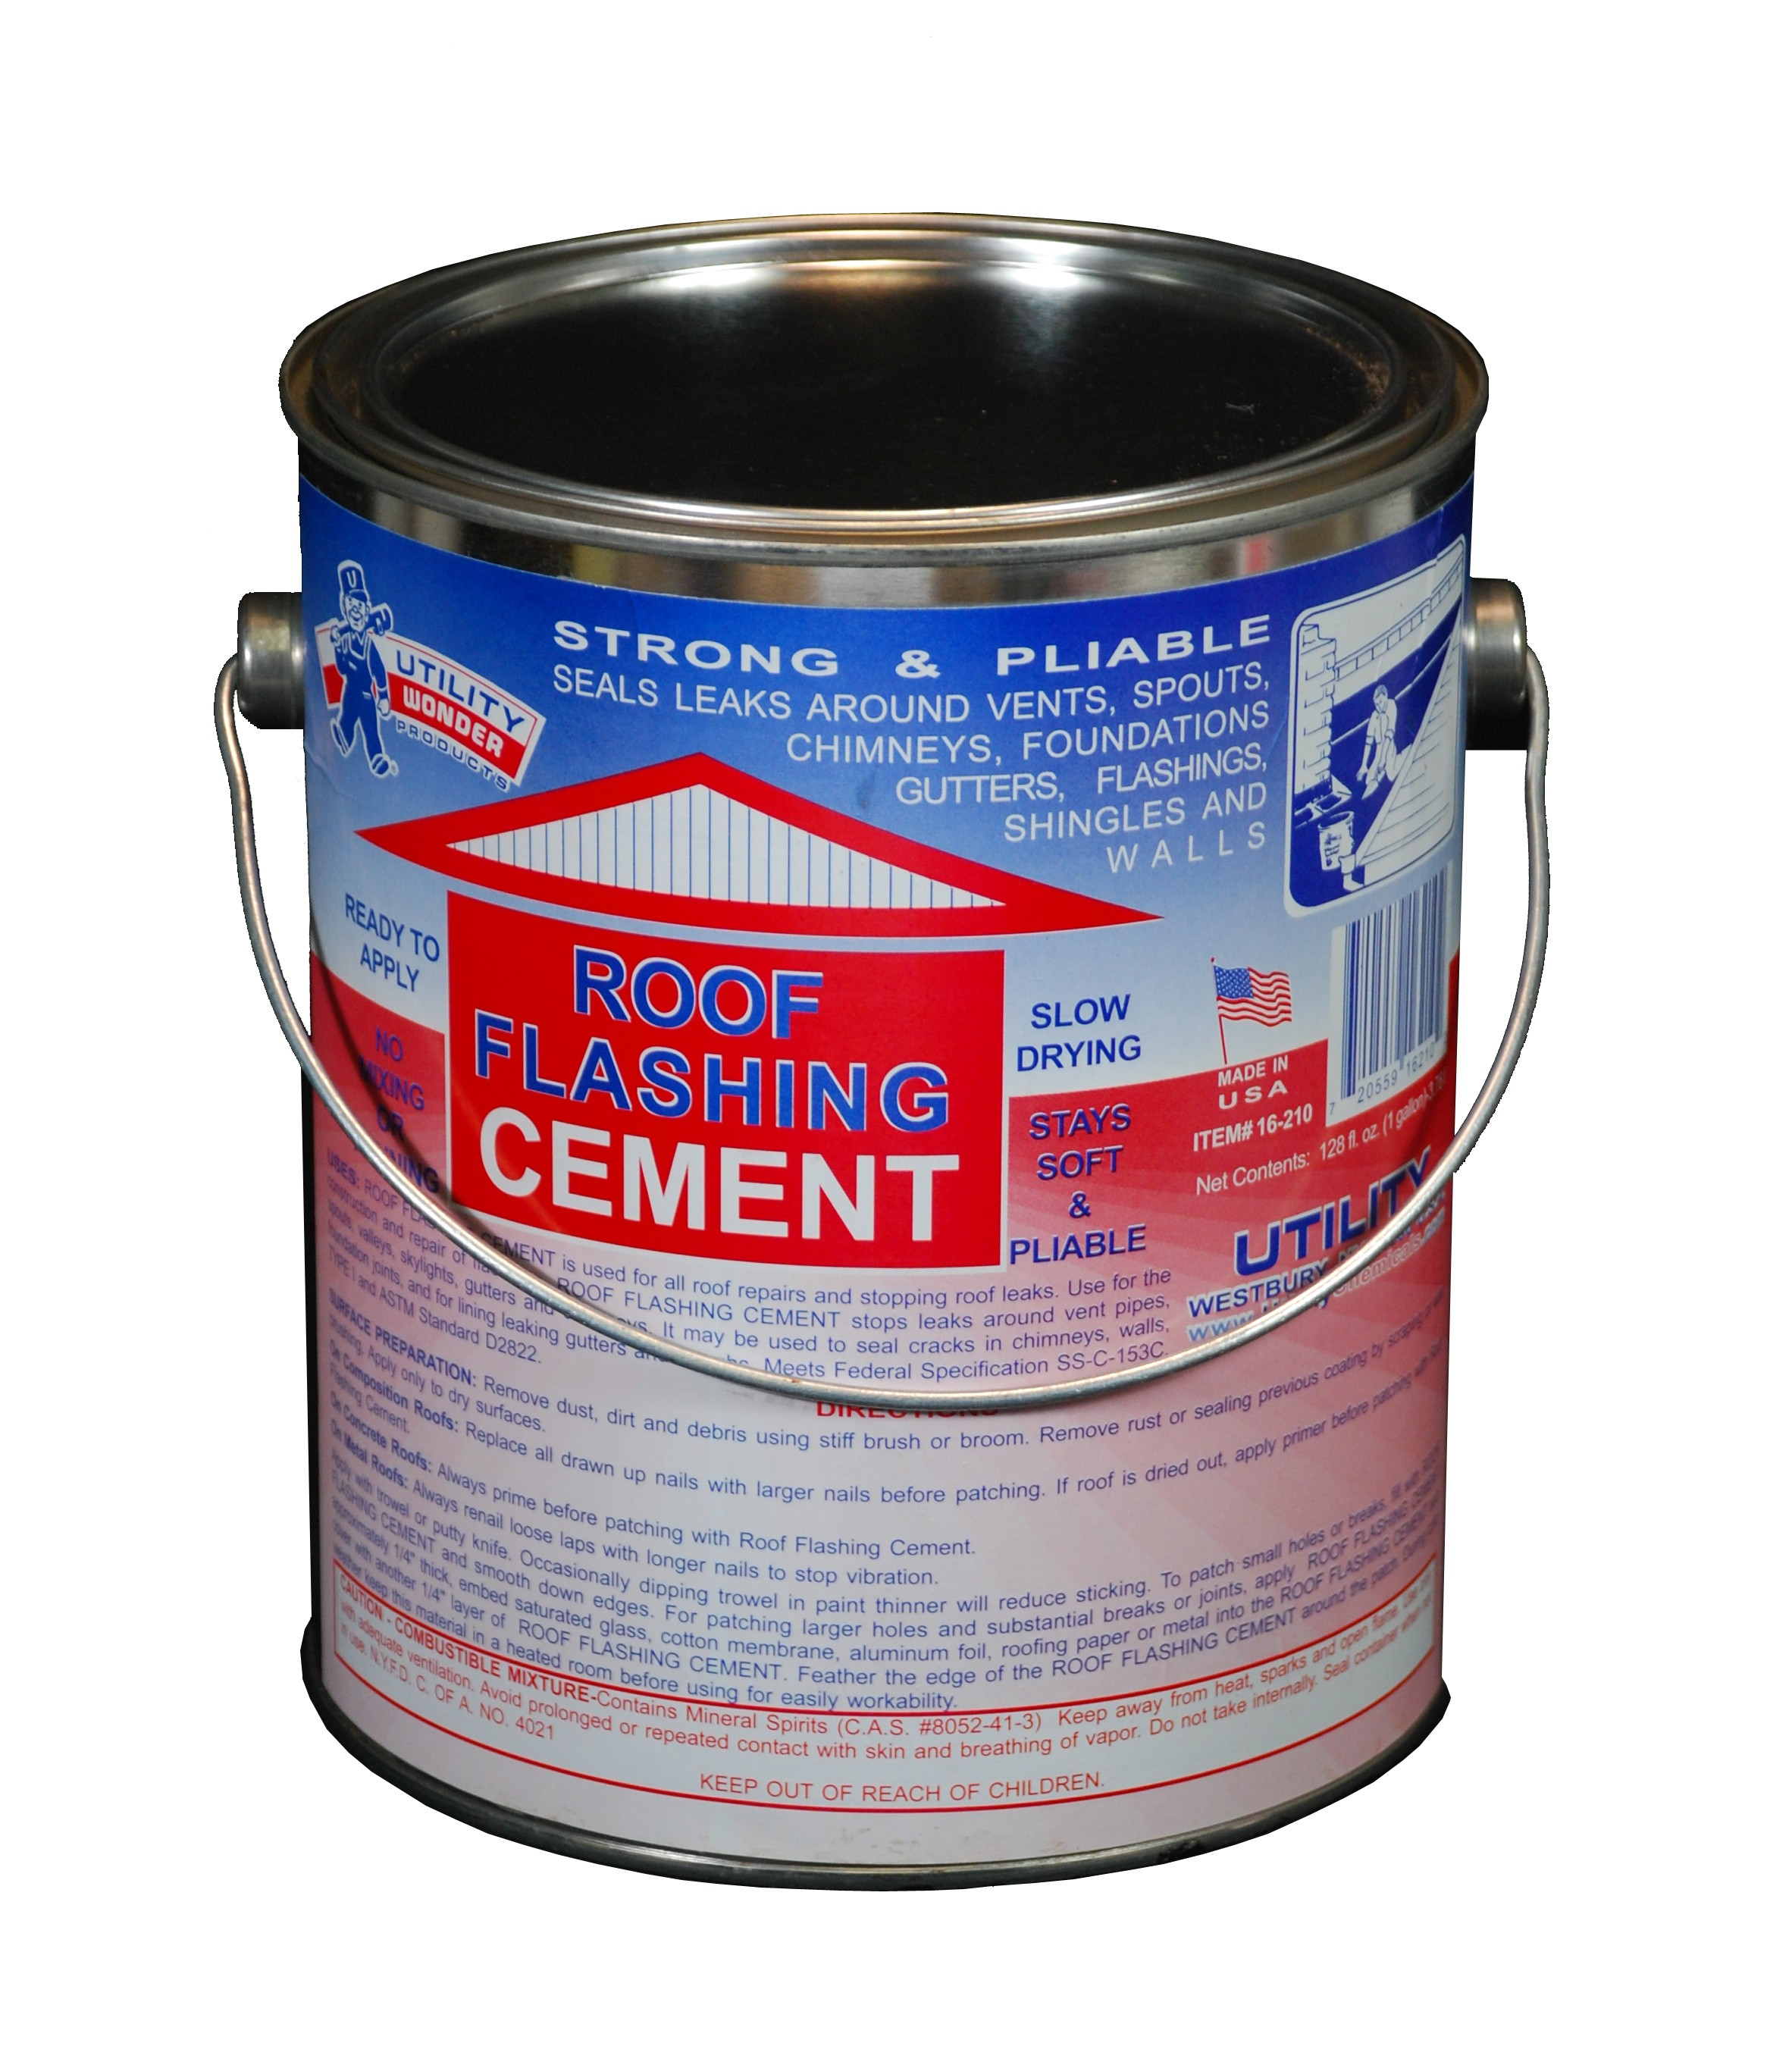 ROOF FLASHING CEMENT